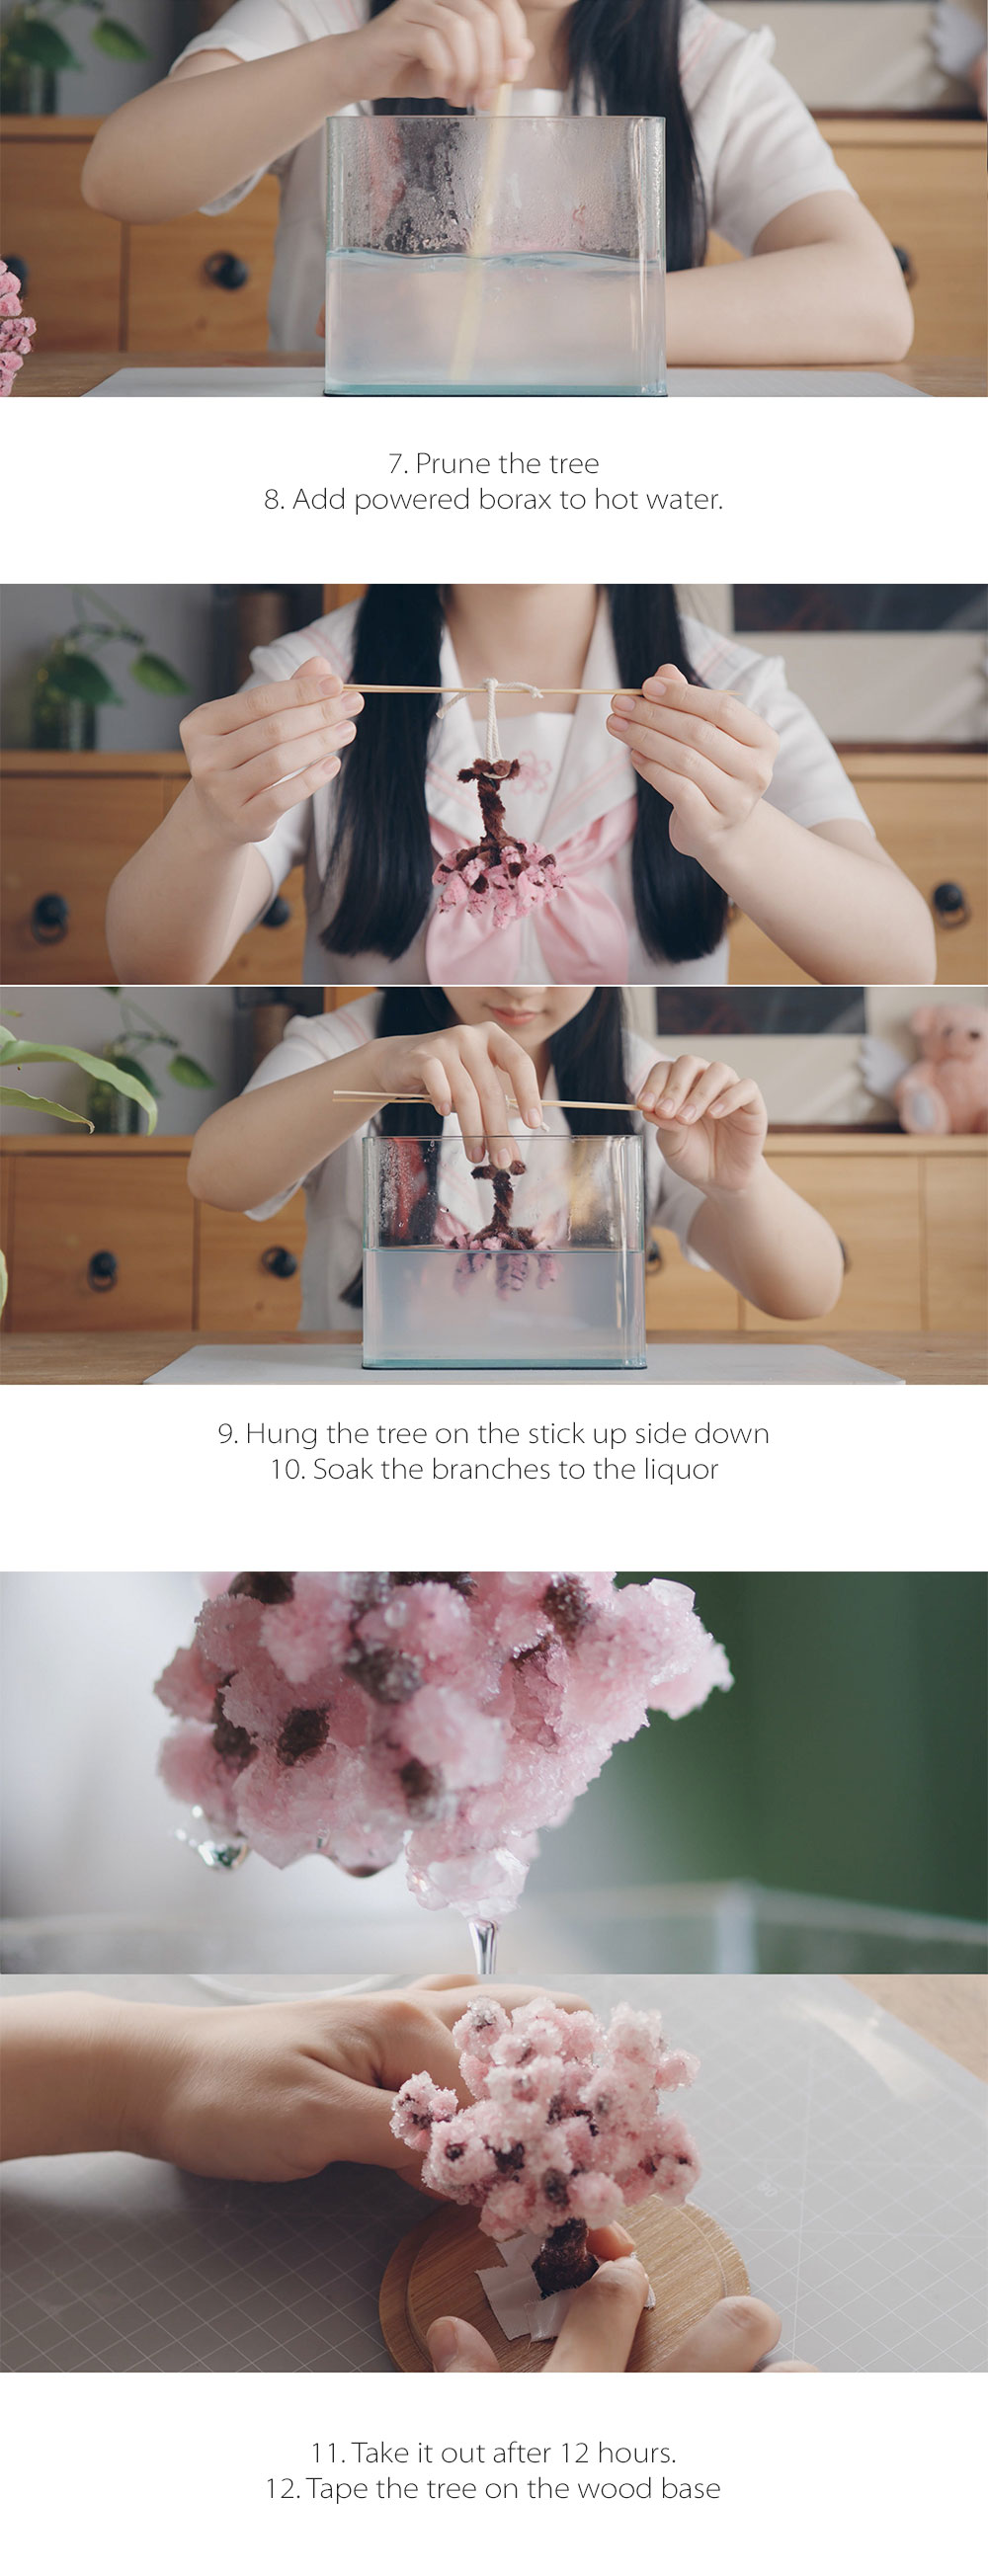 Crystal Cherry Blossom Tree DIY Kit Bring the Cherry Blossom Tree into Your Room